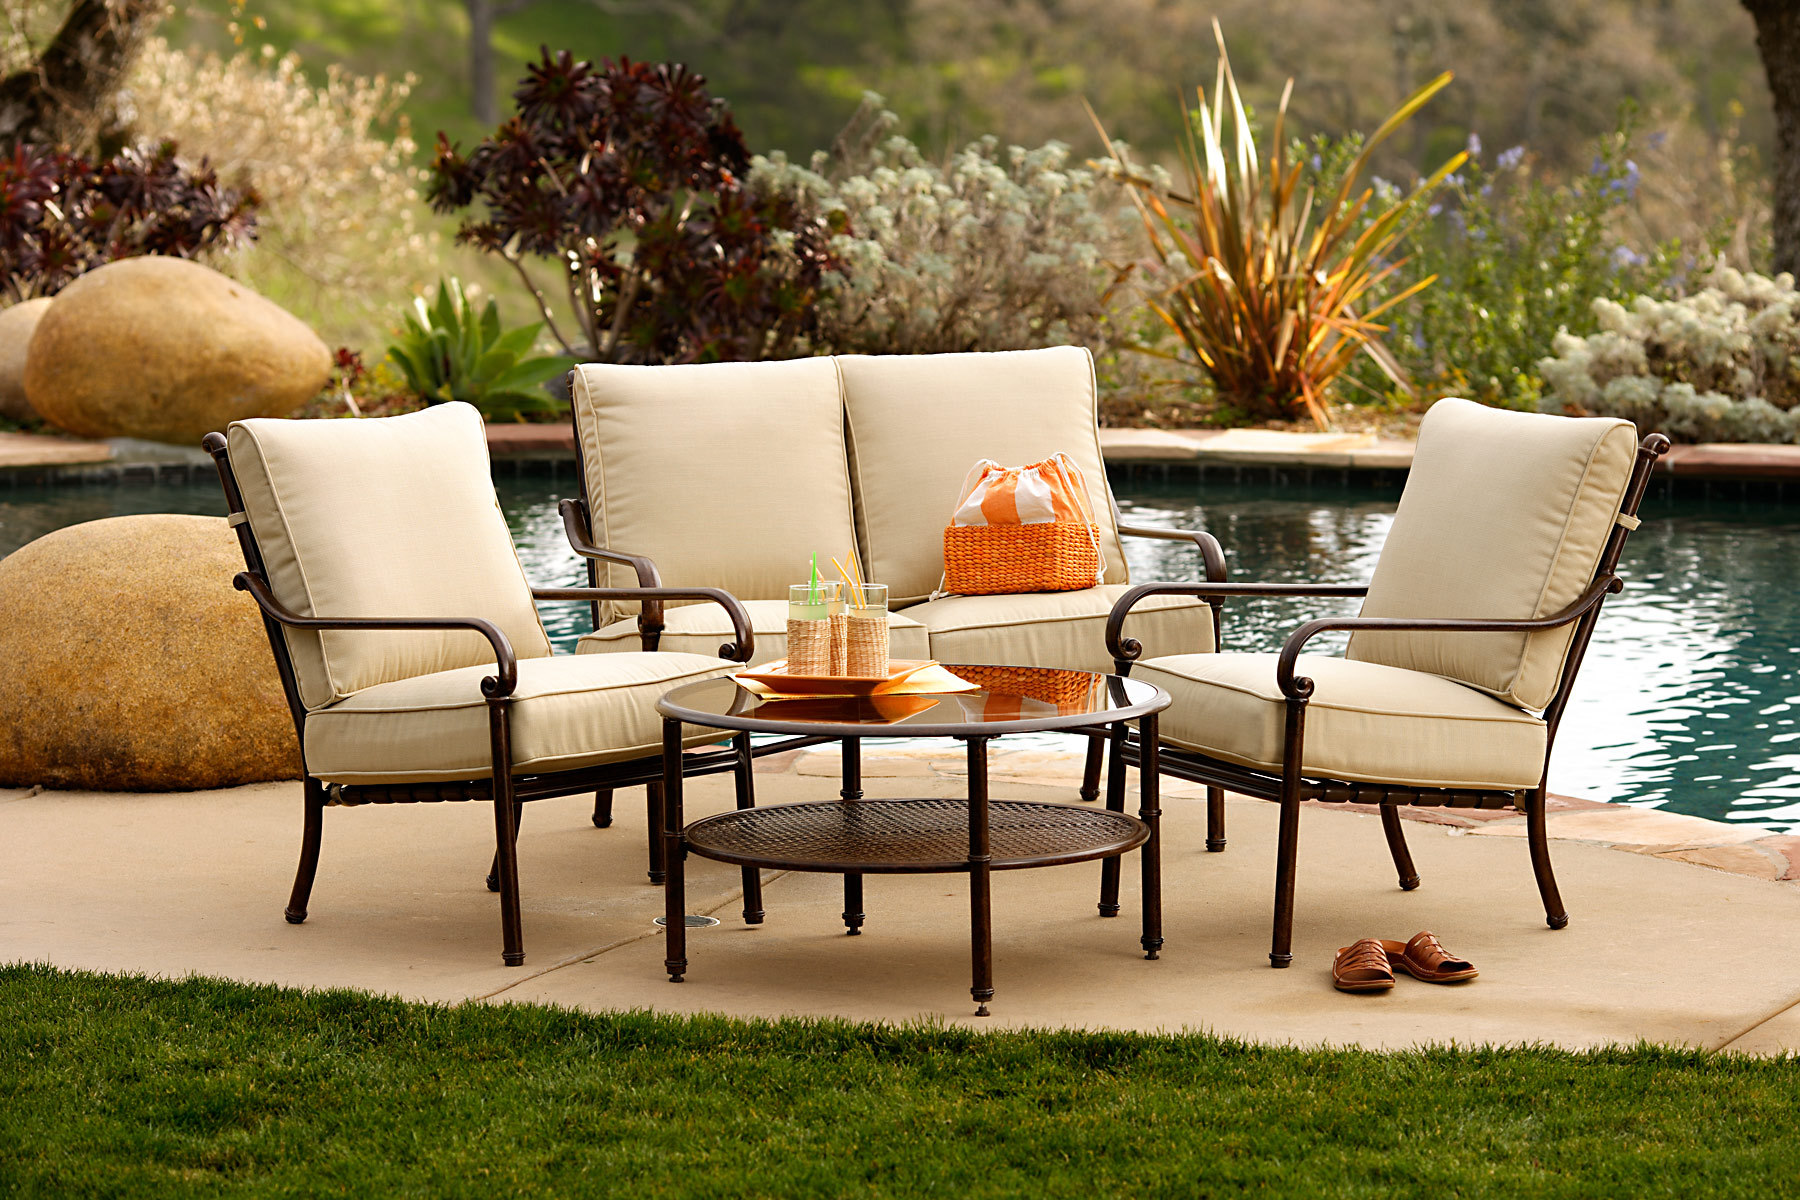 small patio furniture eva furniture On backyard patio furniture